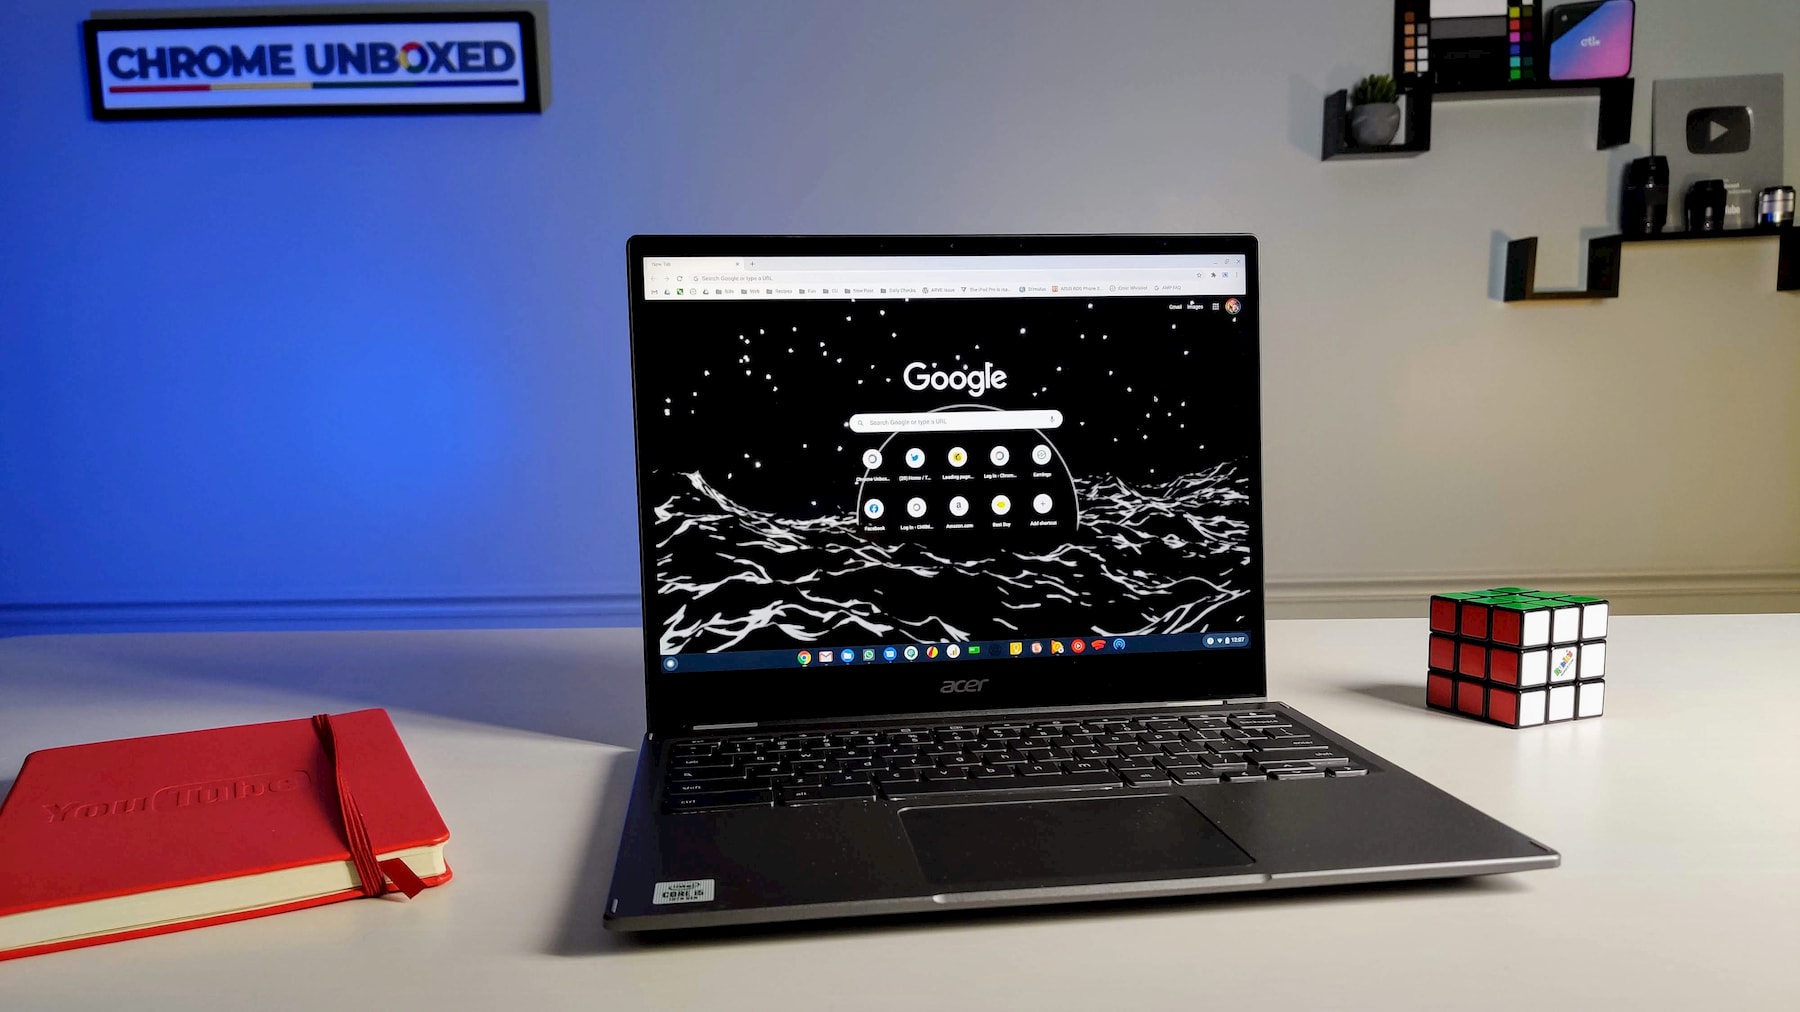 How to make Chrome's new tab page display an animated GIF background